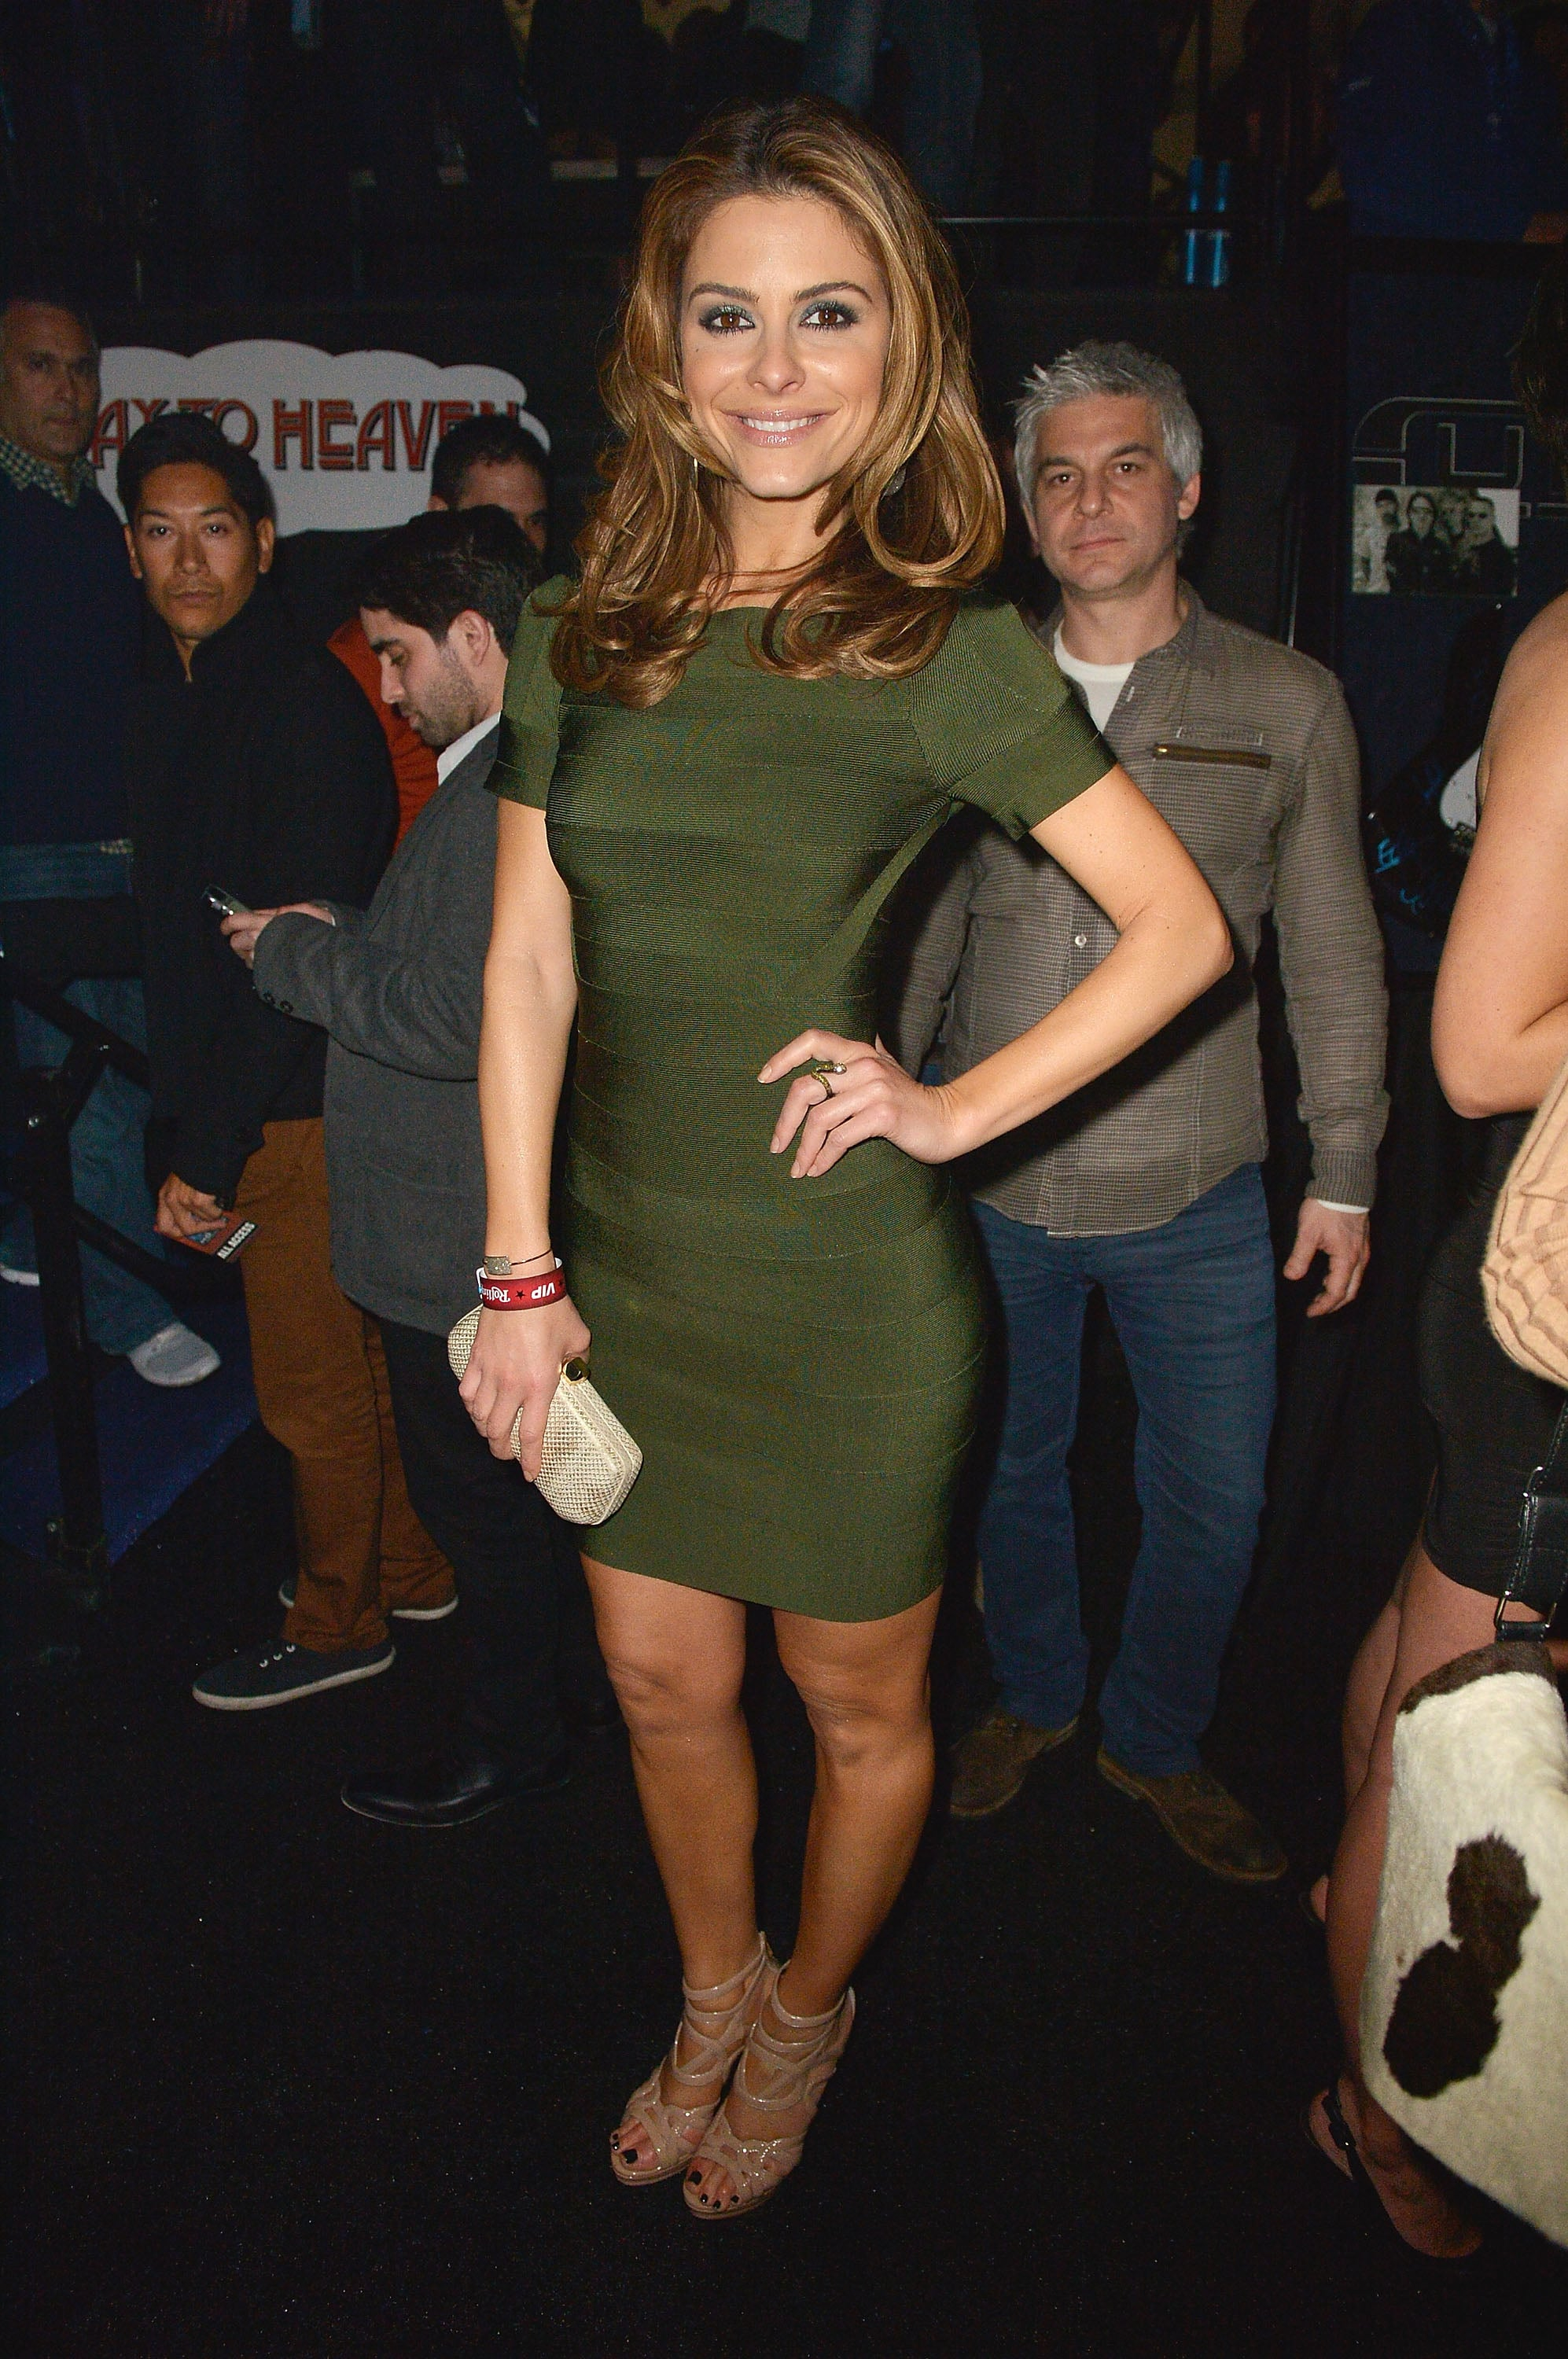 Maria Menounos wore a body-con olive green minidress, which she paired with nude strappy heels and a white textured clutch, at the Rolling Stone party.